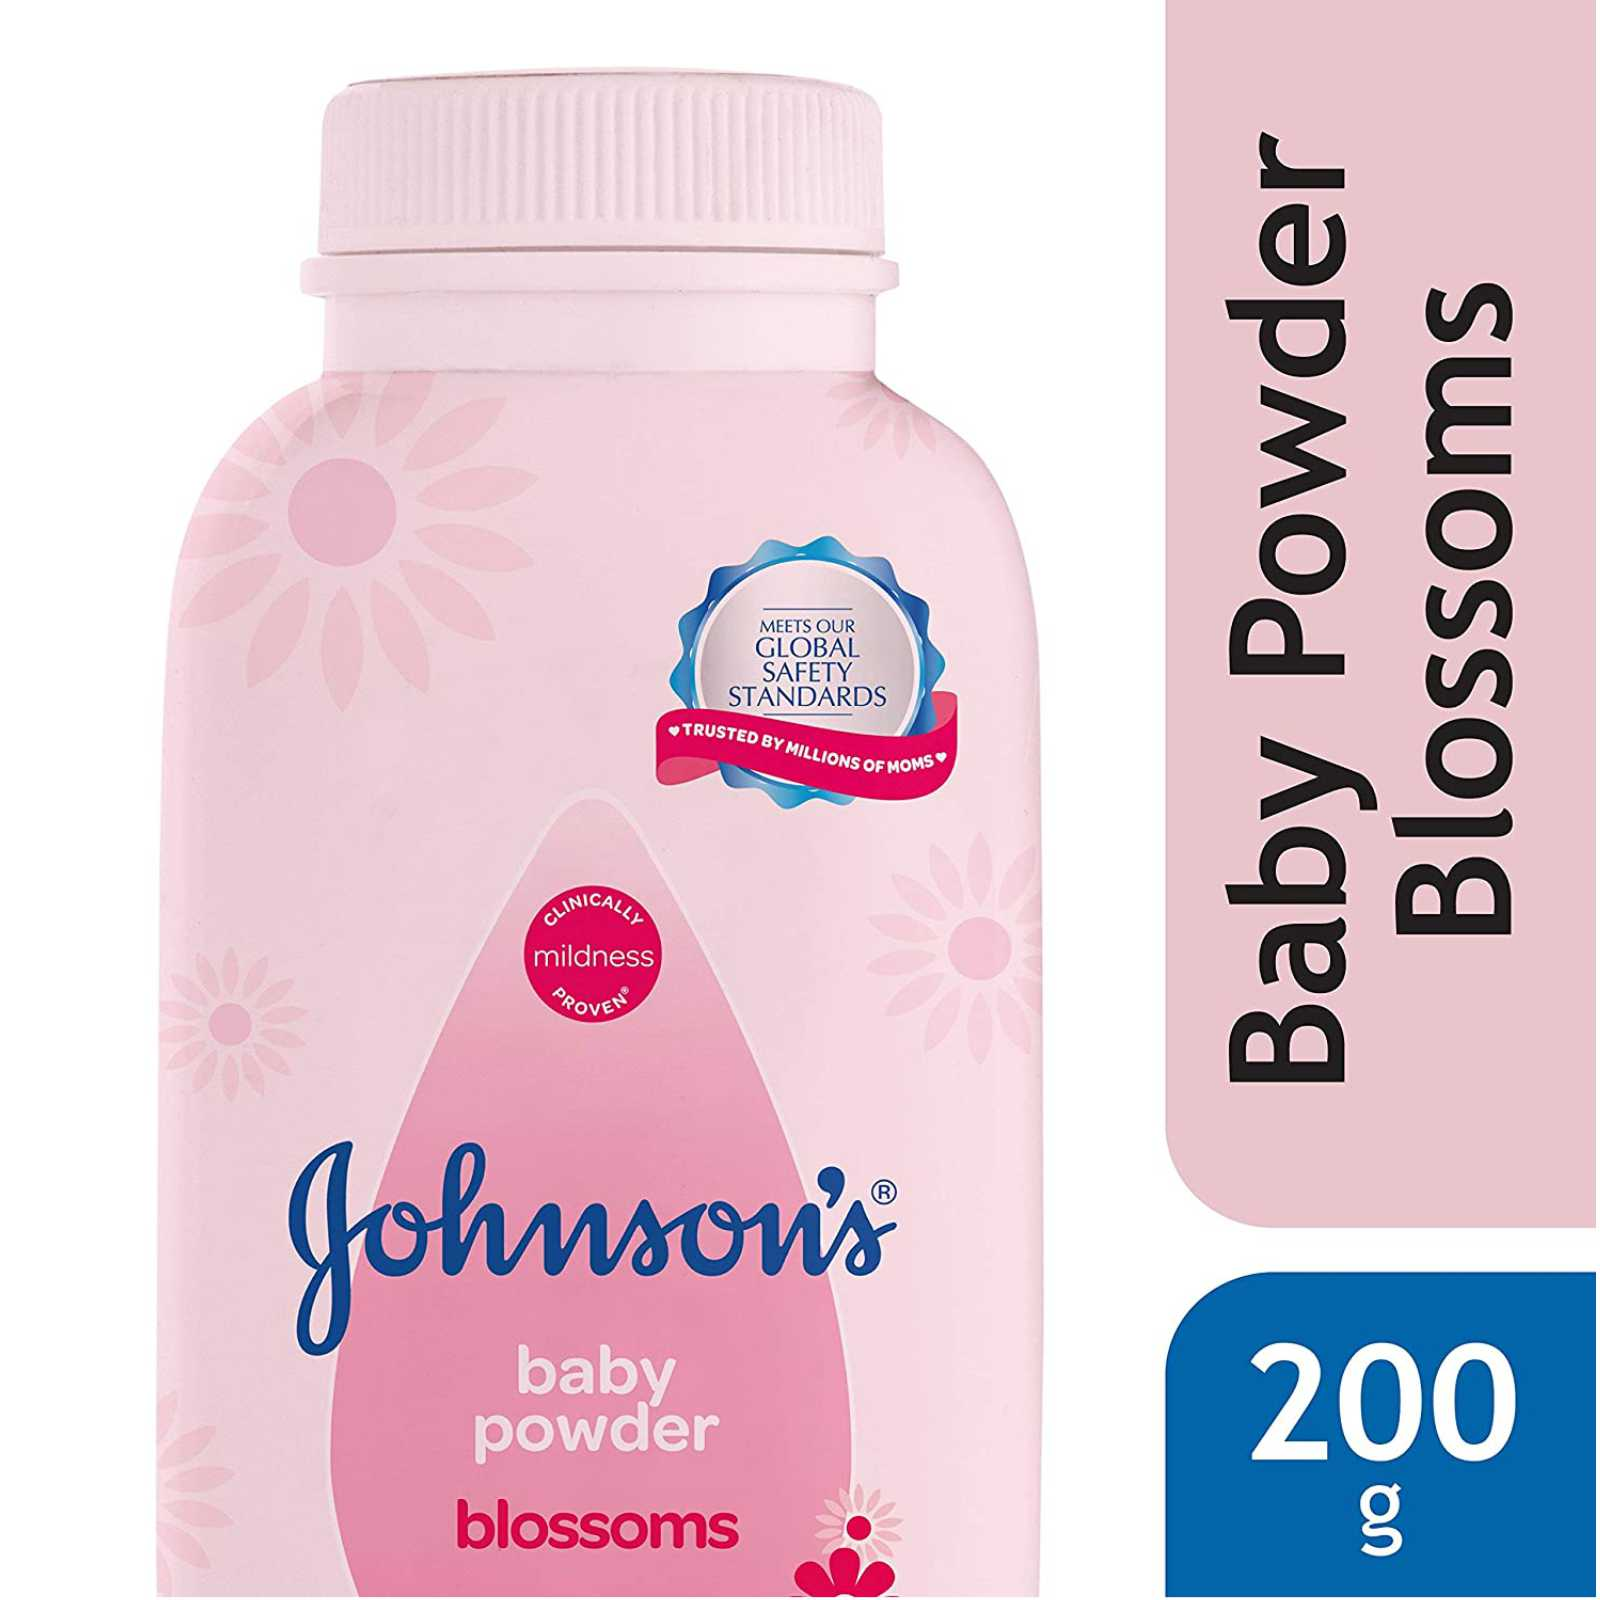 Johnson's Baby Powder - Blossoms (200g)